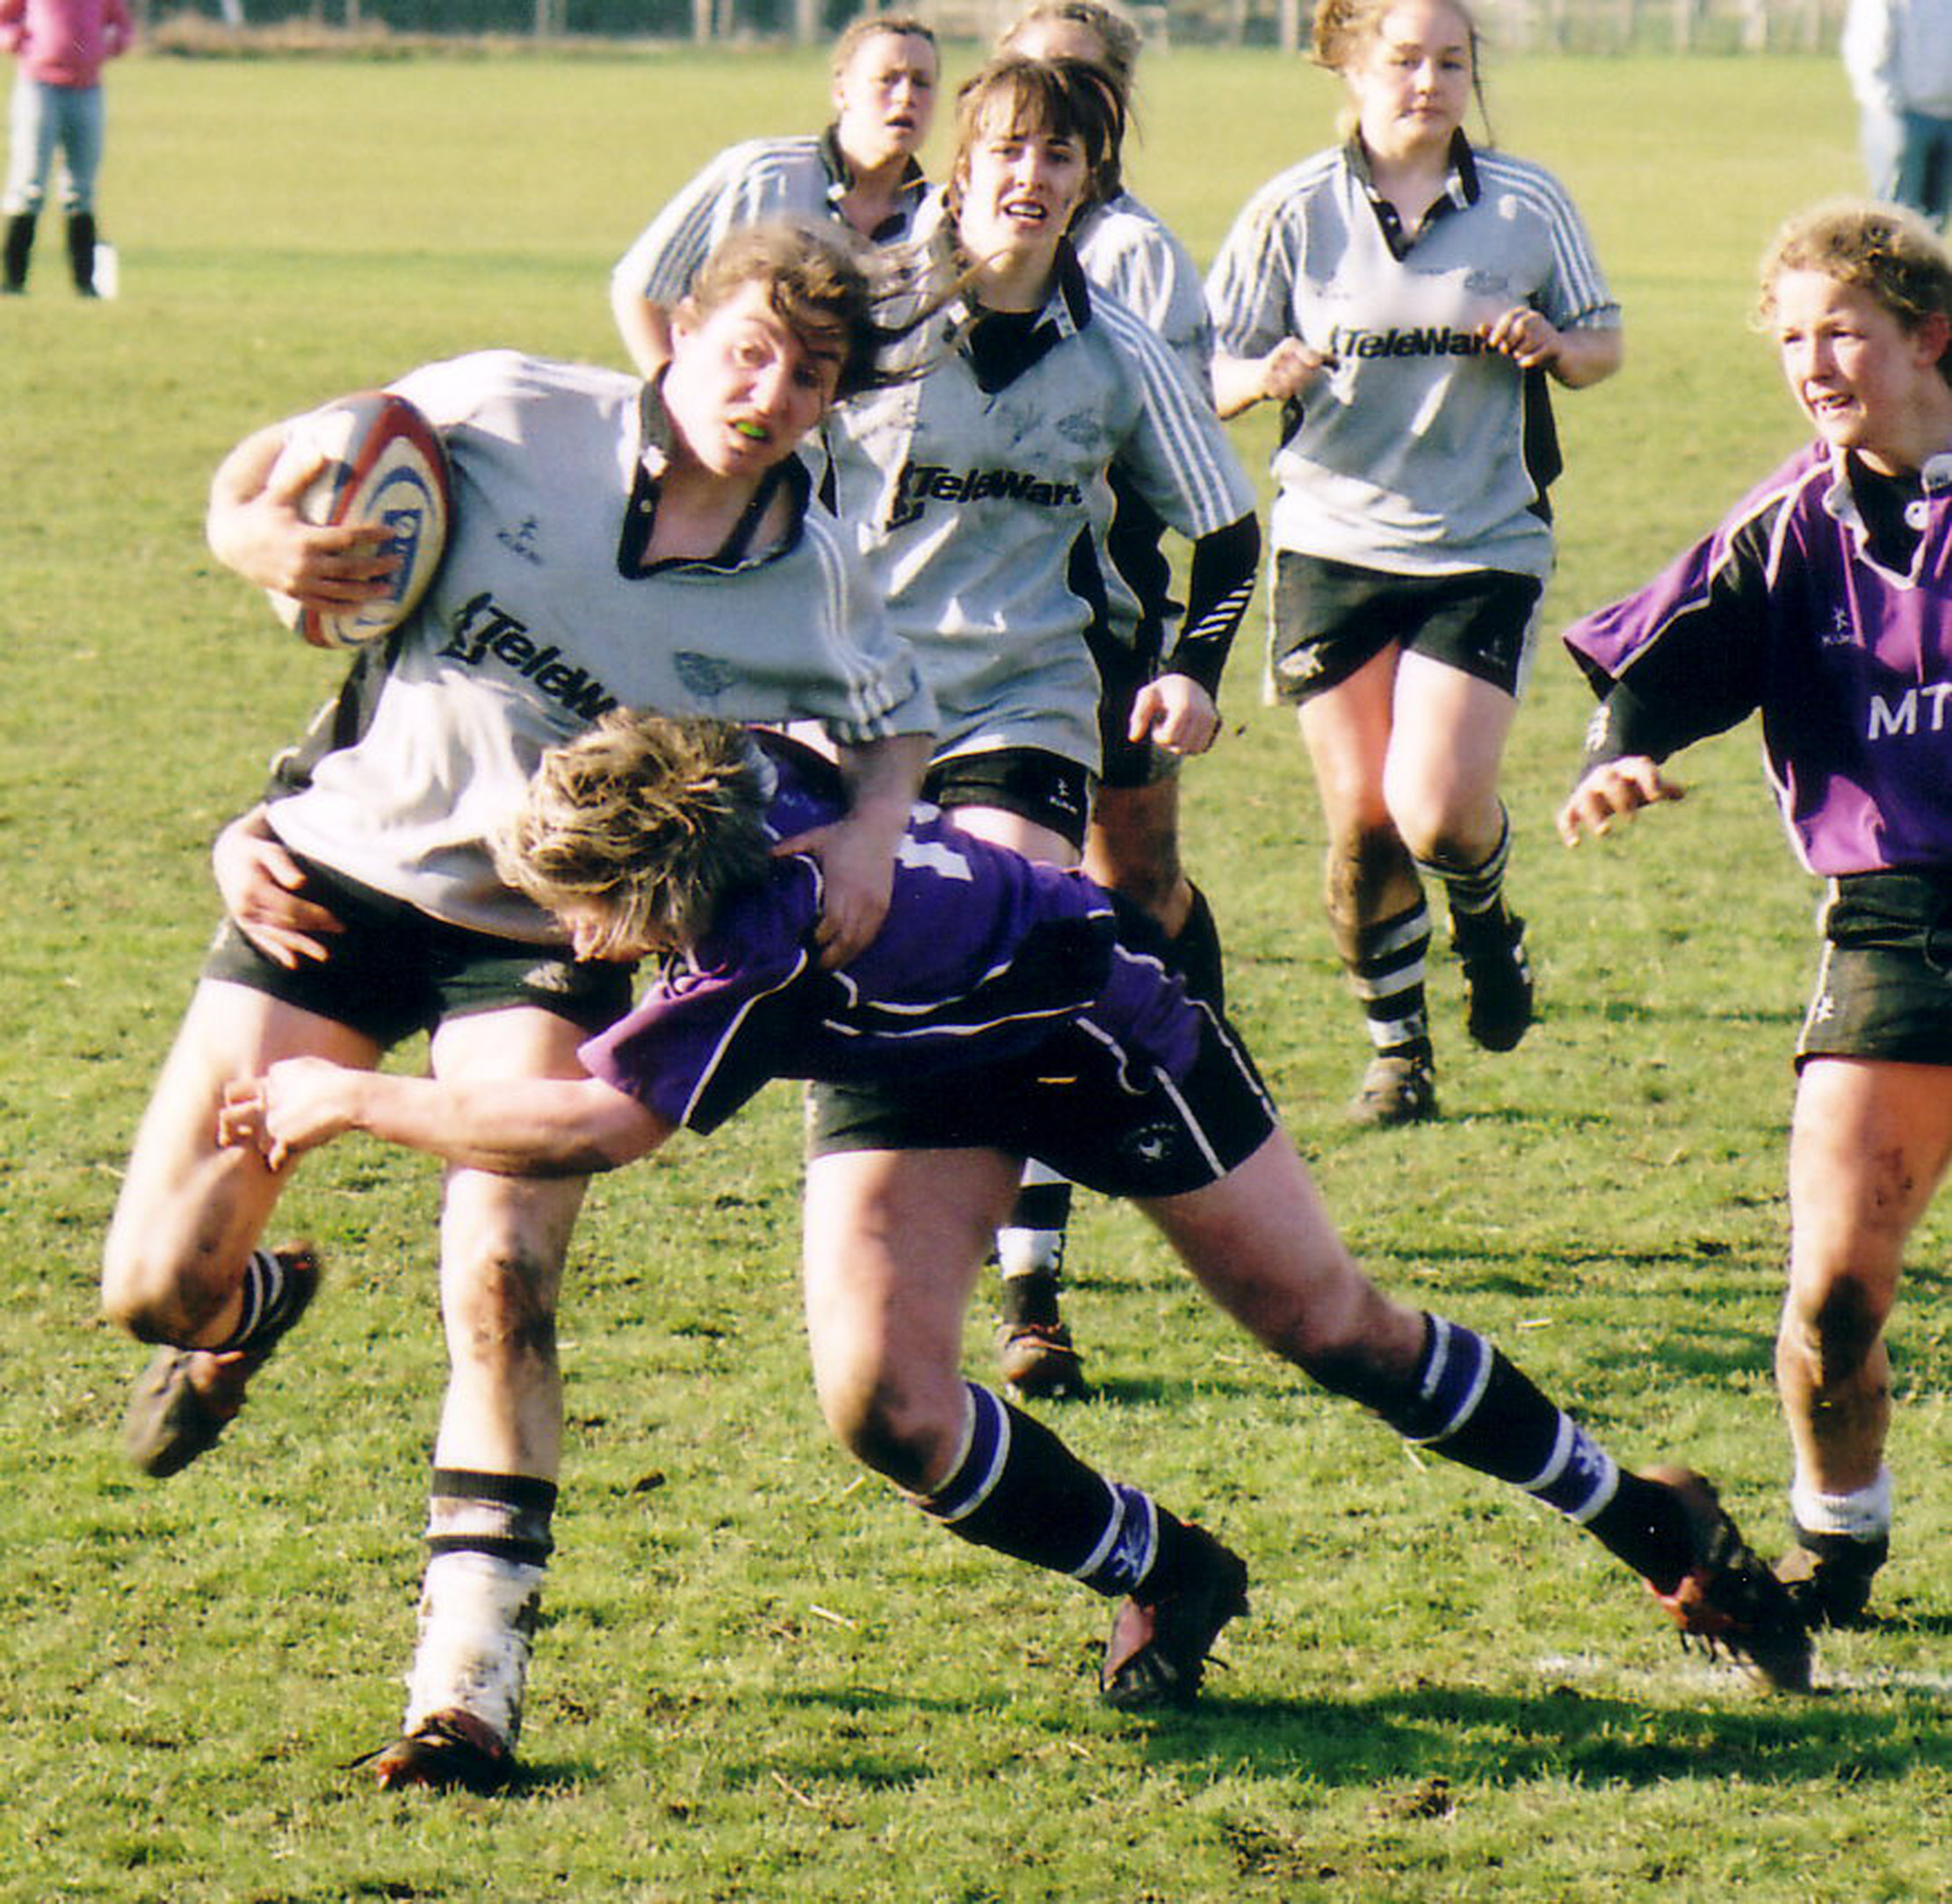 Thirsk sharks in action! photo